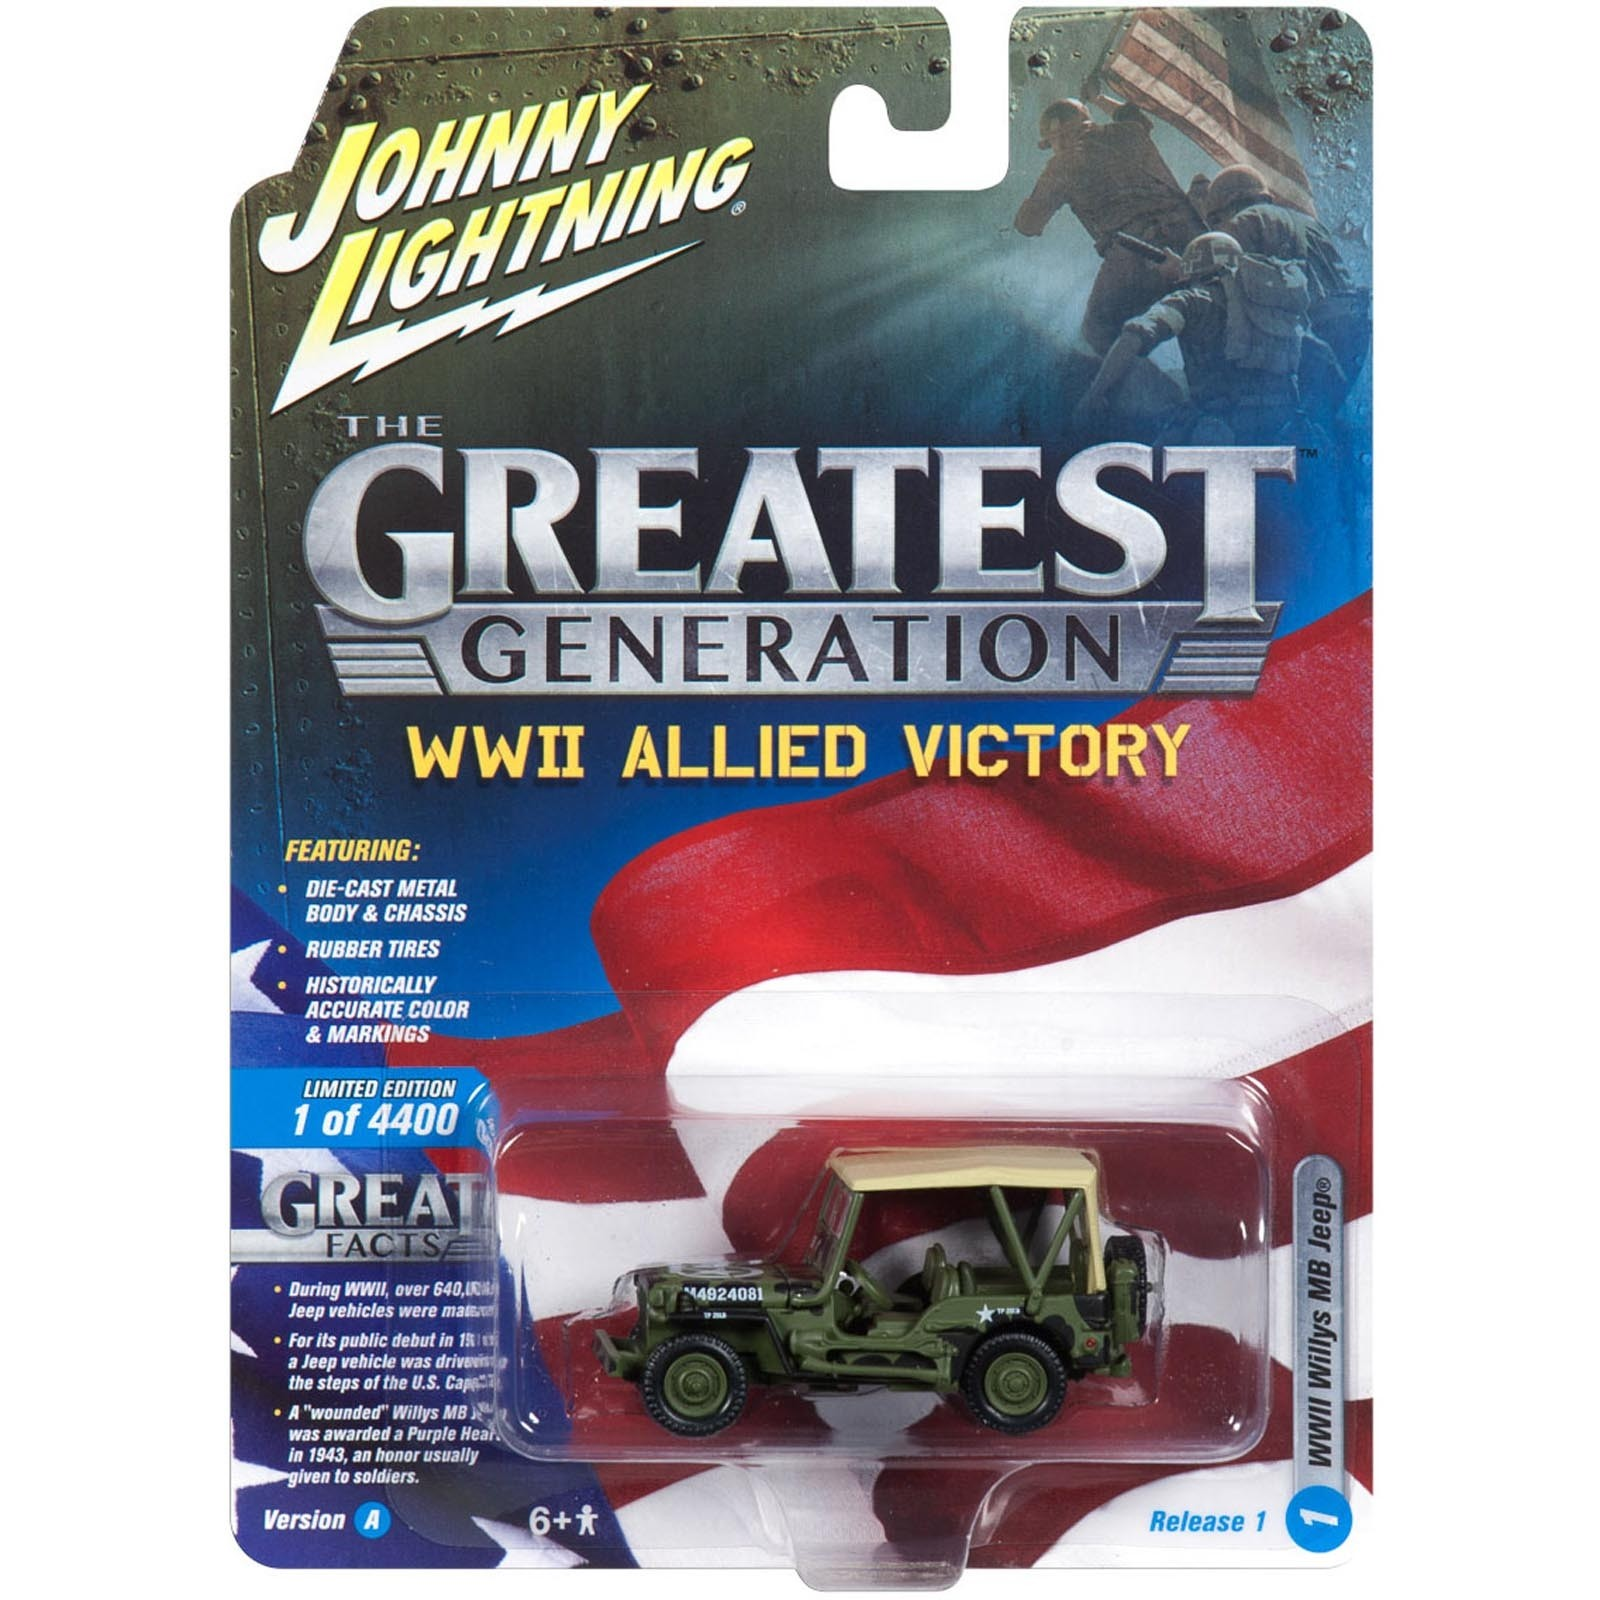 Miniatura - 1:64 - WWII Willys MB Jeep - The Greatest Generation - Johnny Lightning